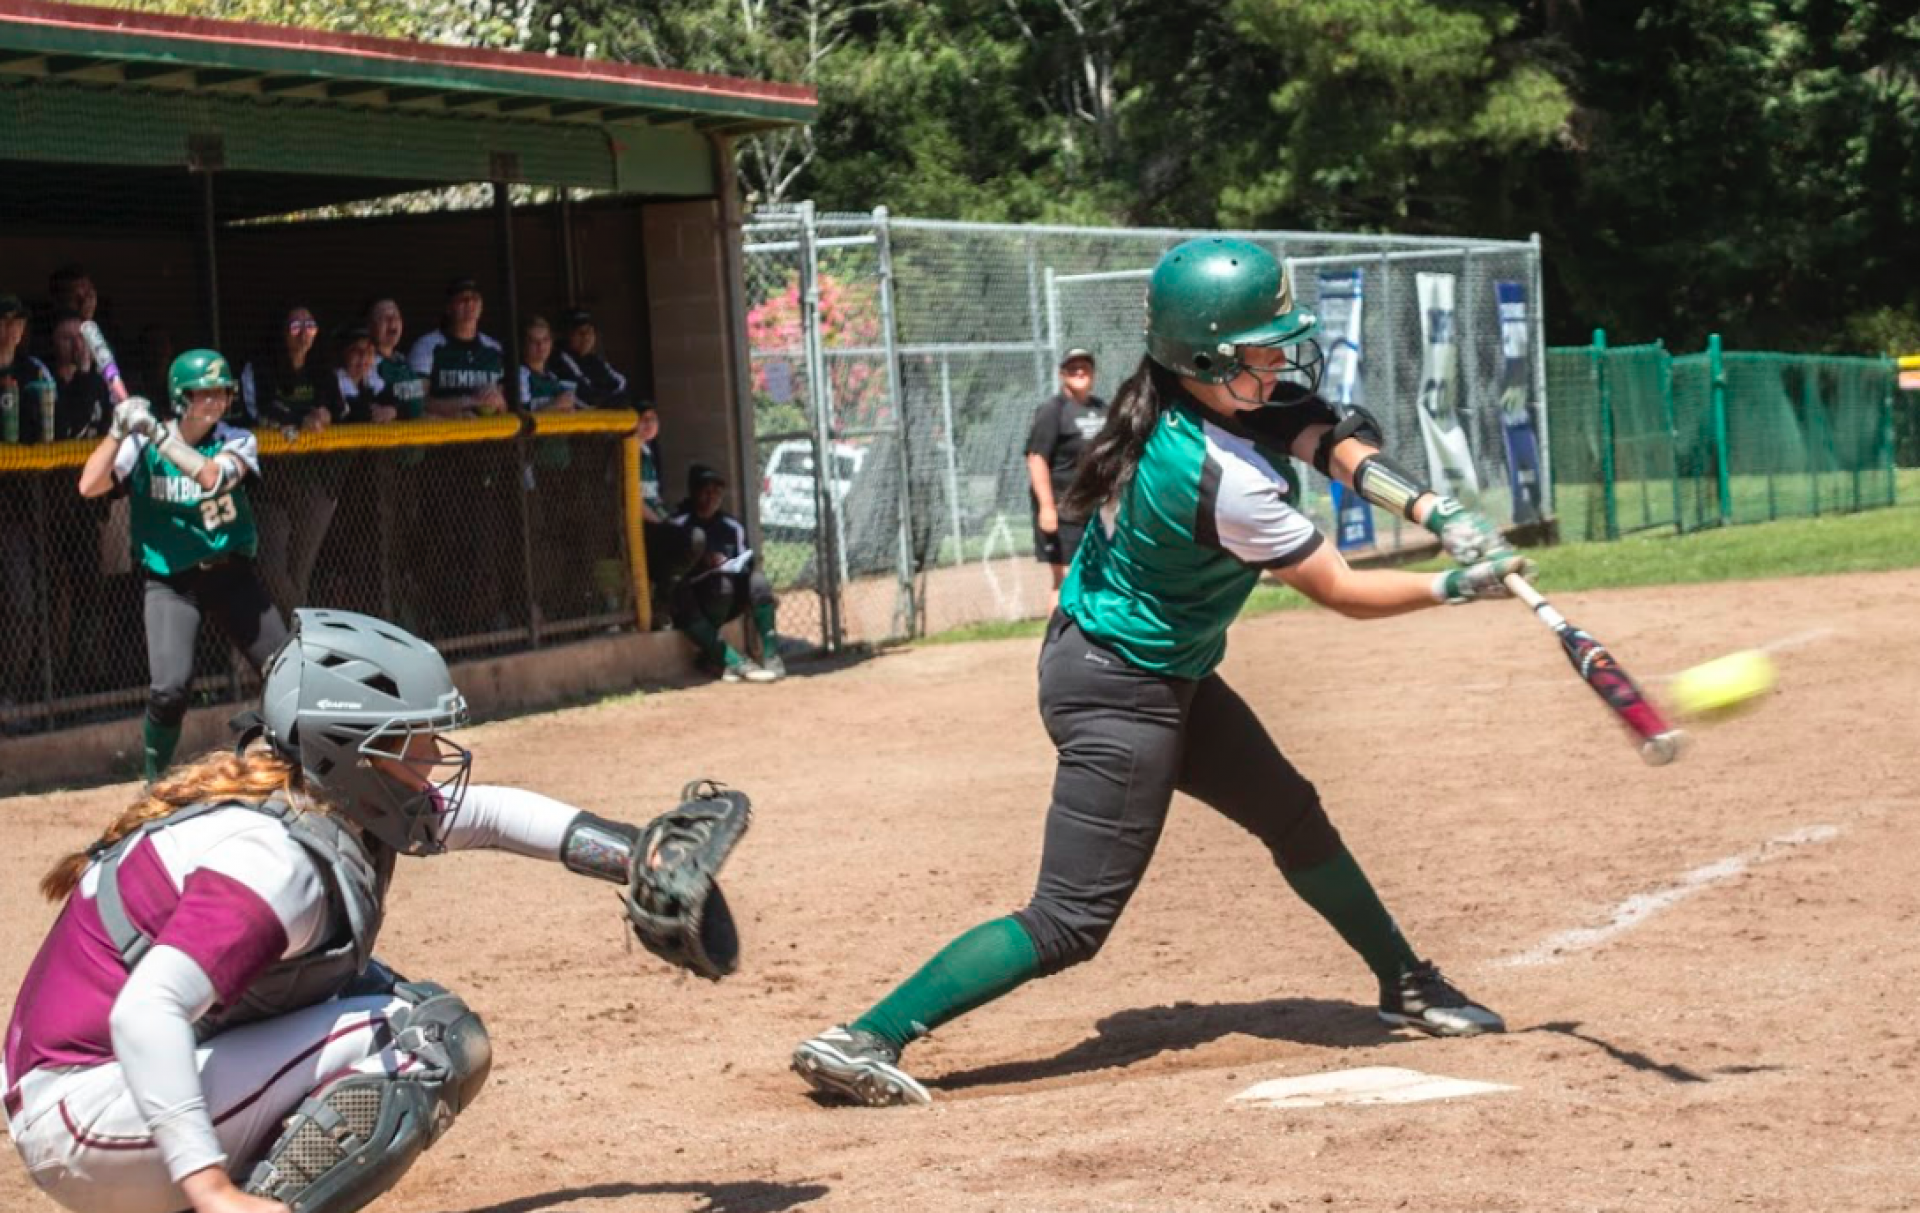 Humboldt State softball team played Chico State Wildcats on April 21. Game played at the Lumberjacks home field. HSU's Kelly Sonnemann up to bat. Chico catcher Claire Wayne arm stretched out. Final score 9-1. Chico won. Photo by Bailey Tennery.